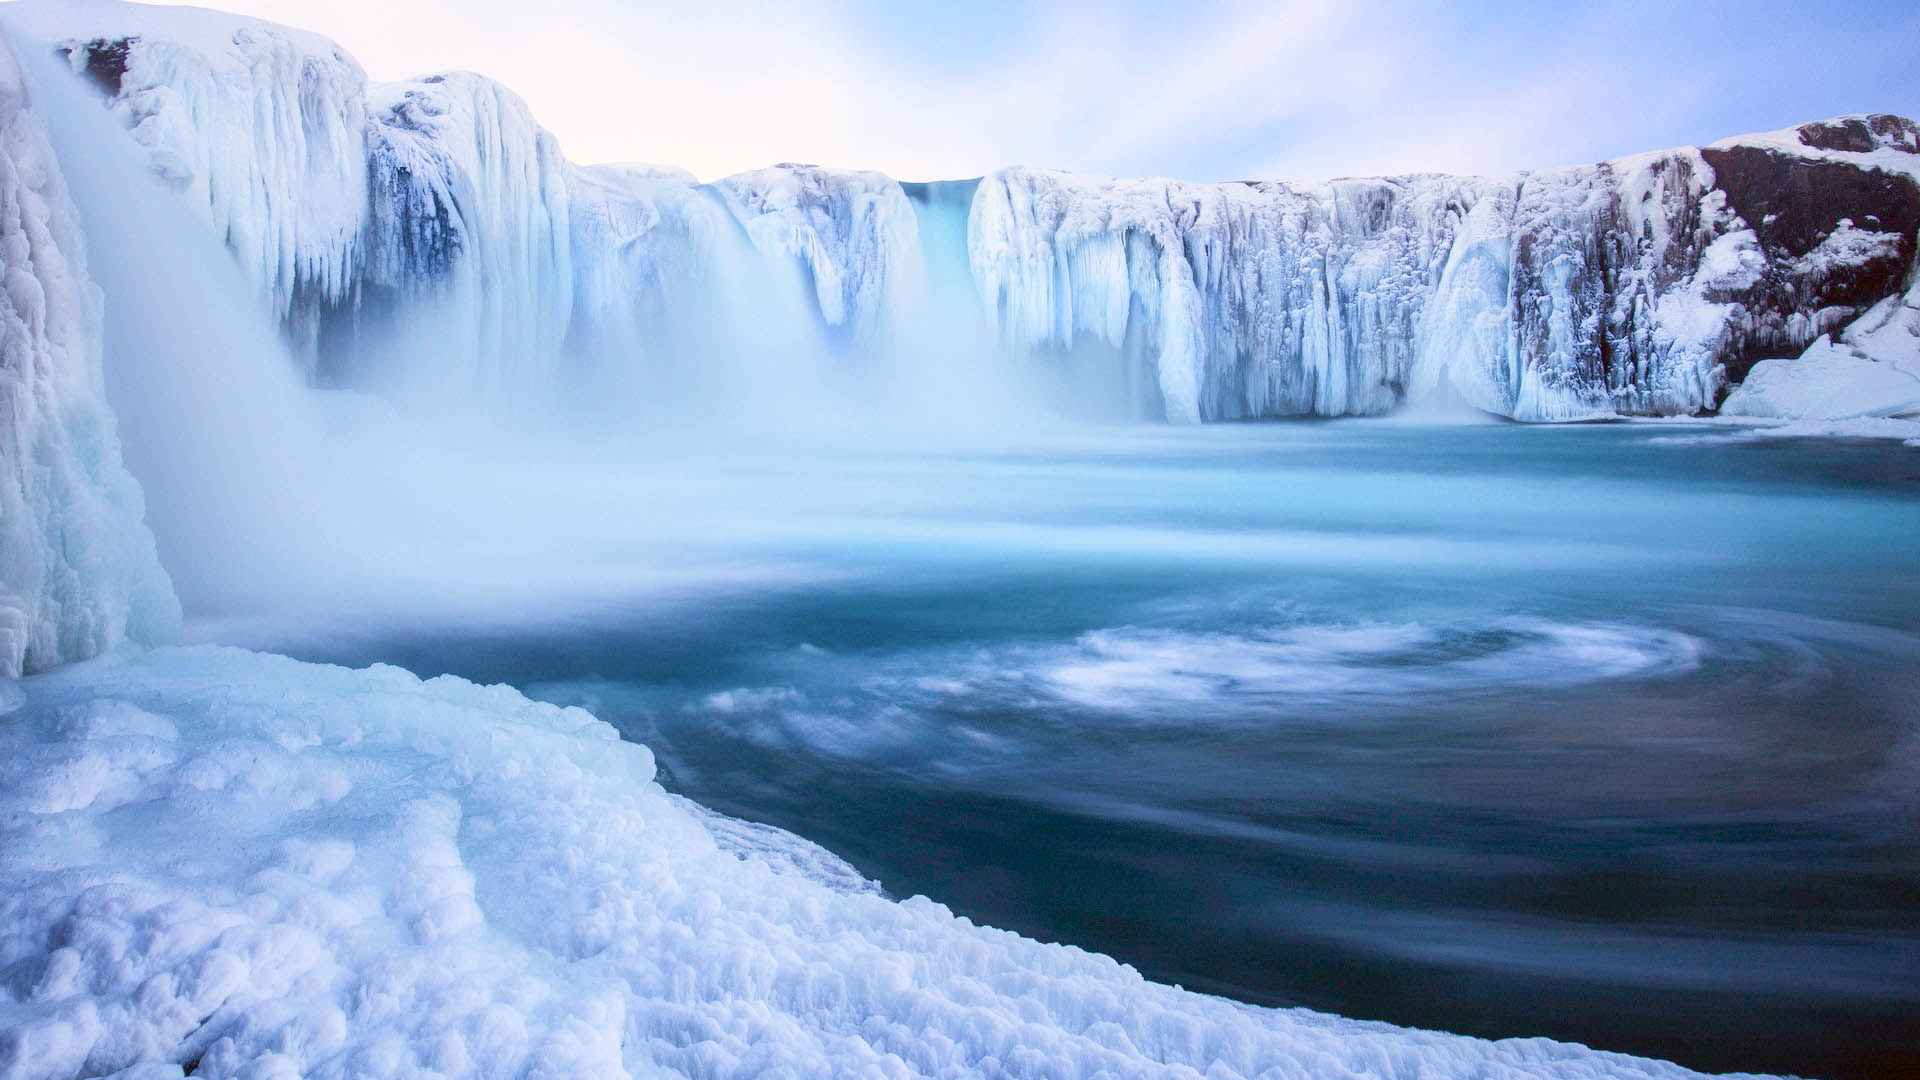 High Resolution Pictures: Glacier Wallpapers High Resolution 2015